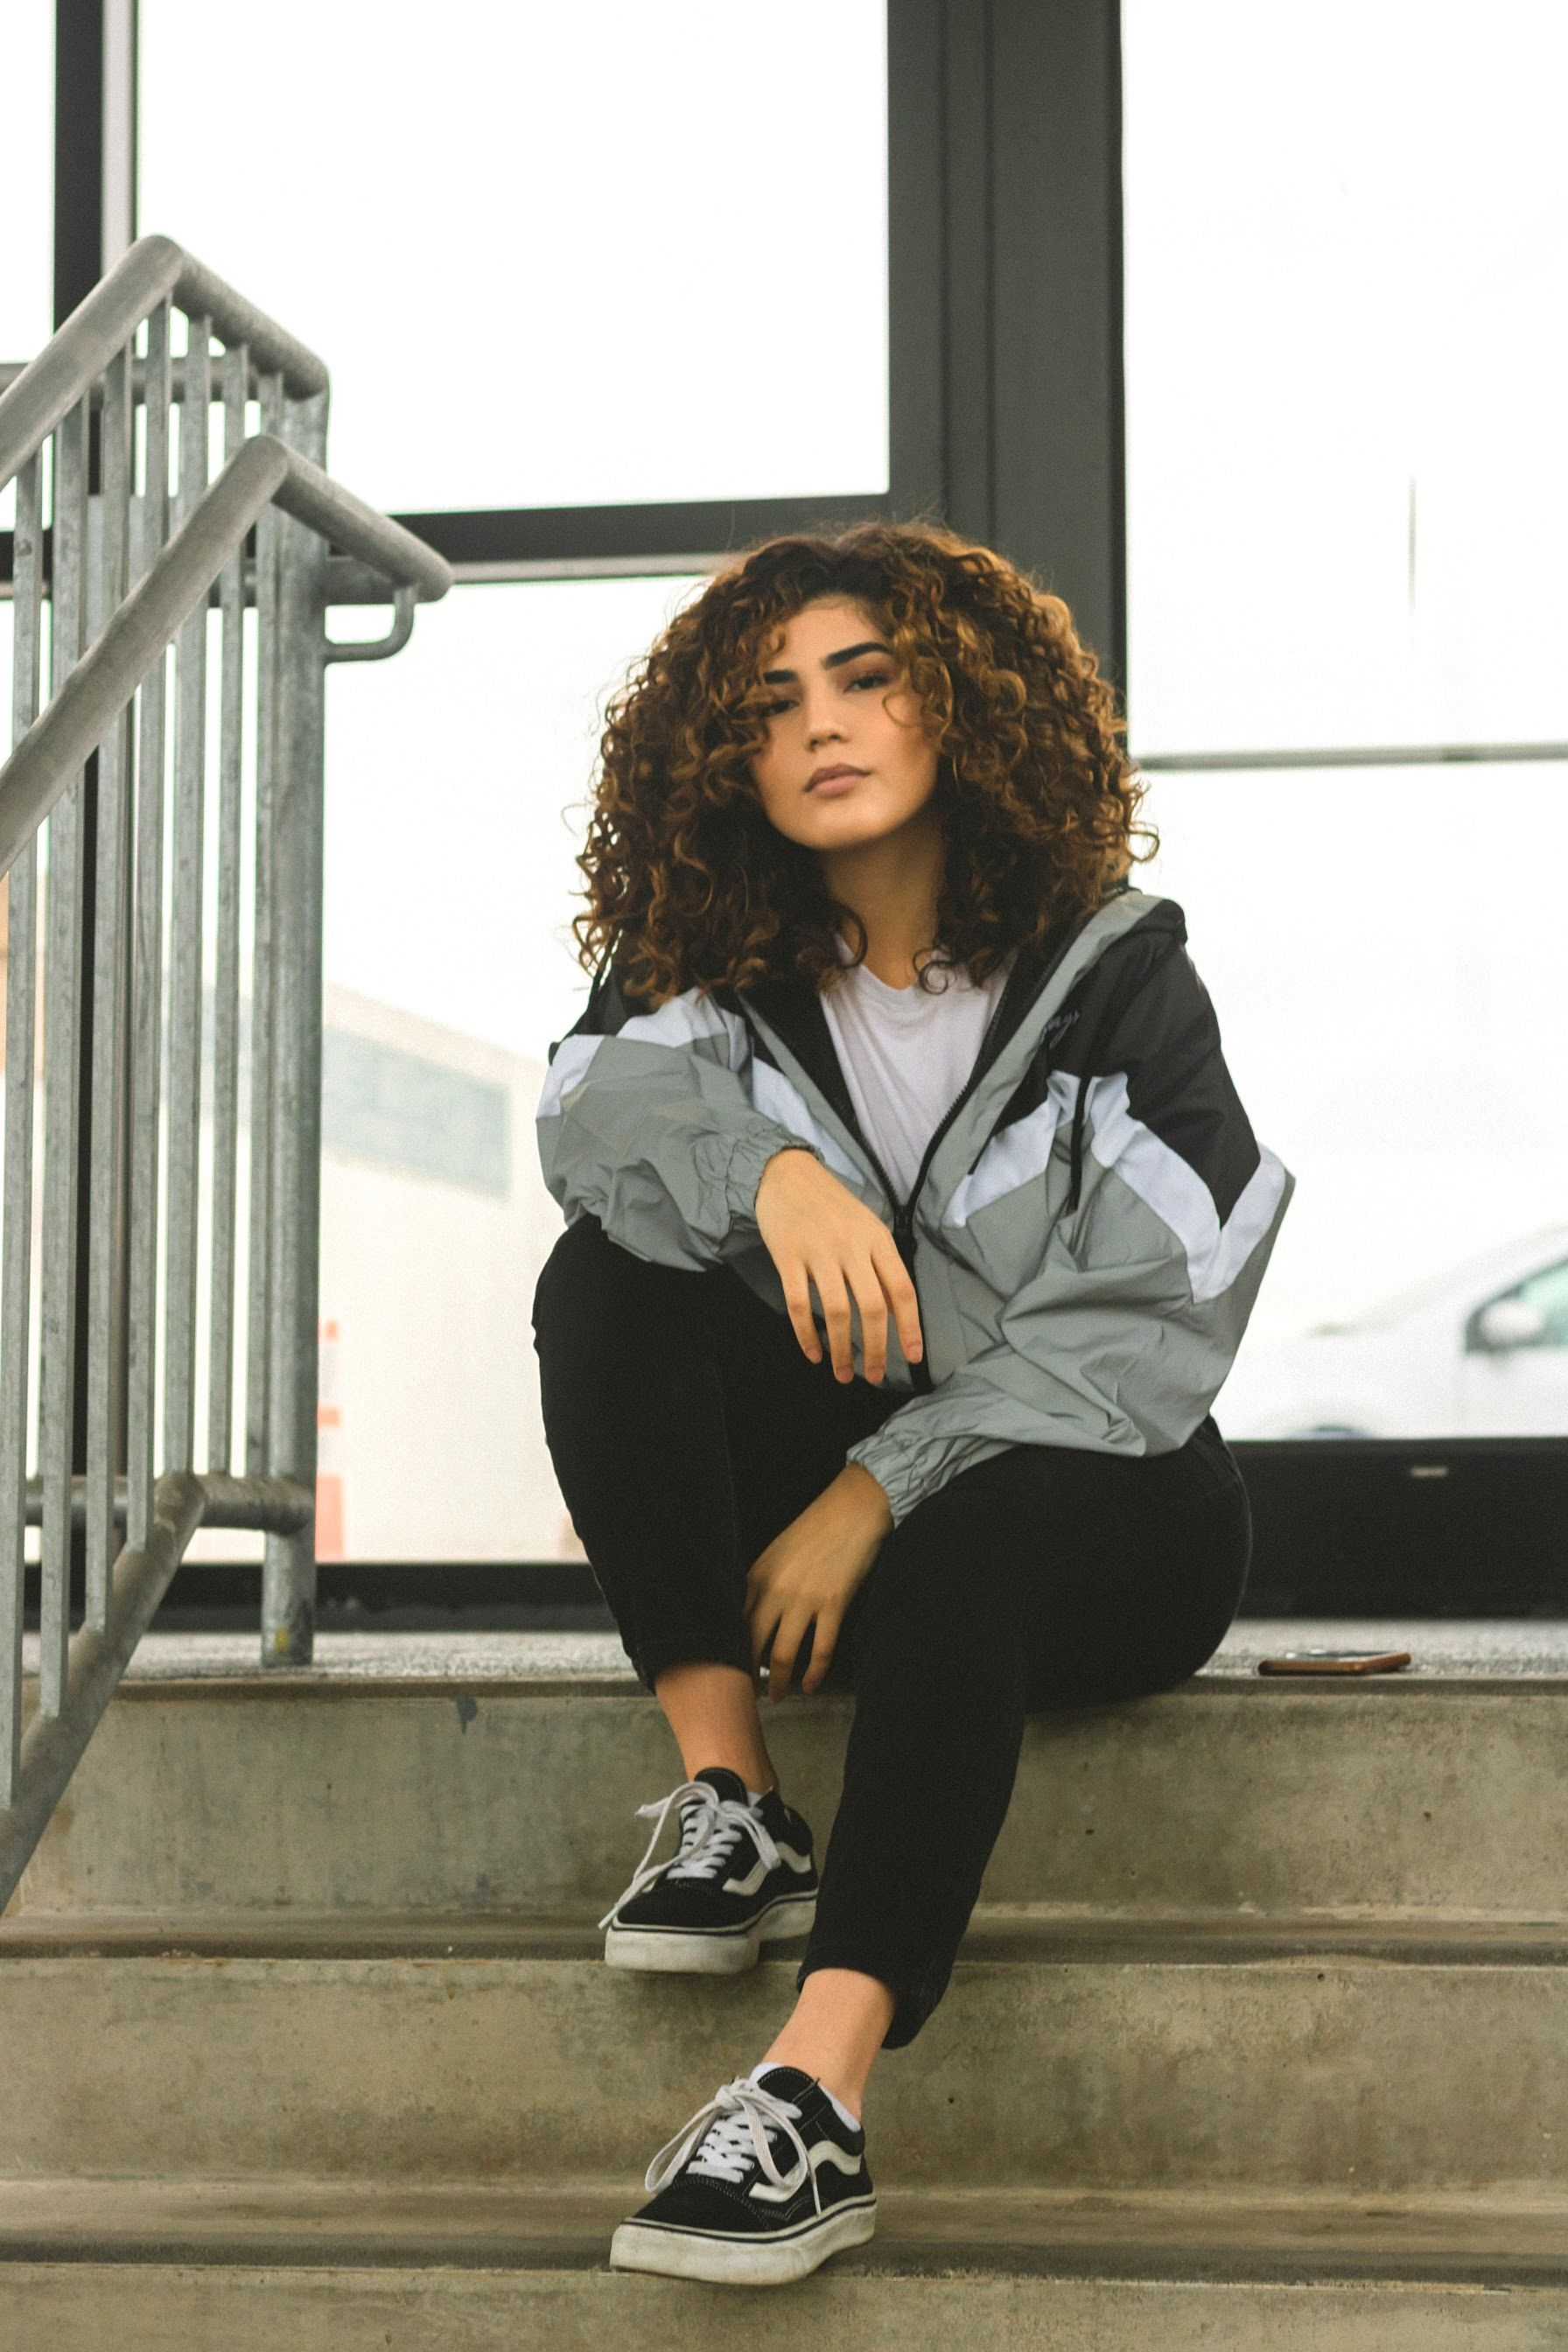 Natural Curly Hair In 2020 Cute Simple Outfits Curly Hair Styles Chill Outfits